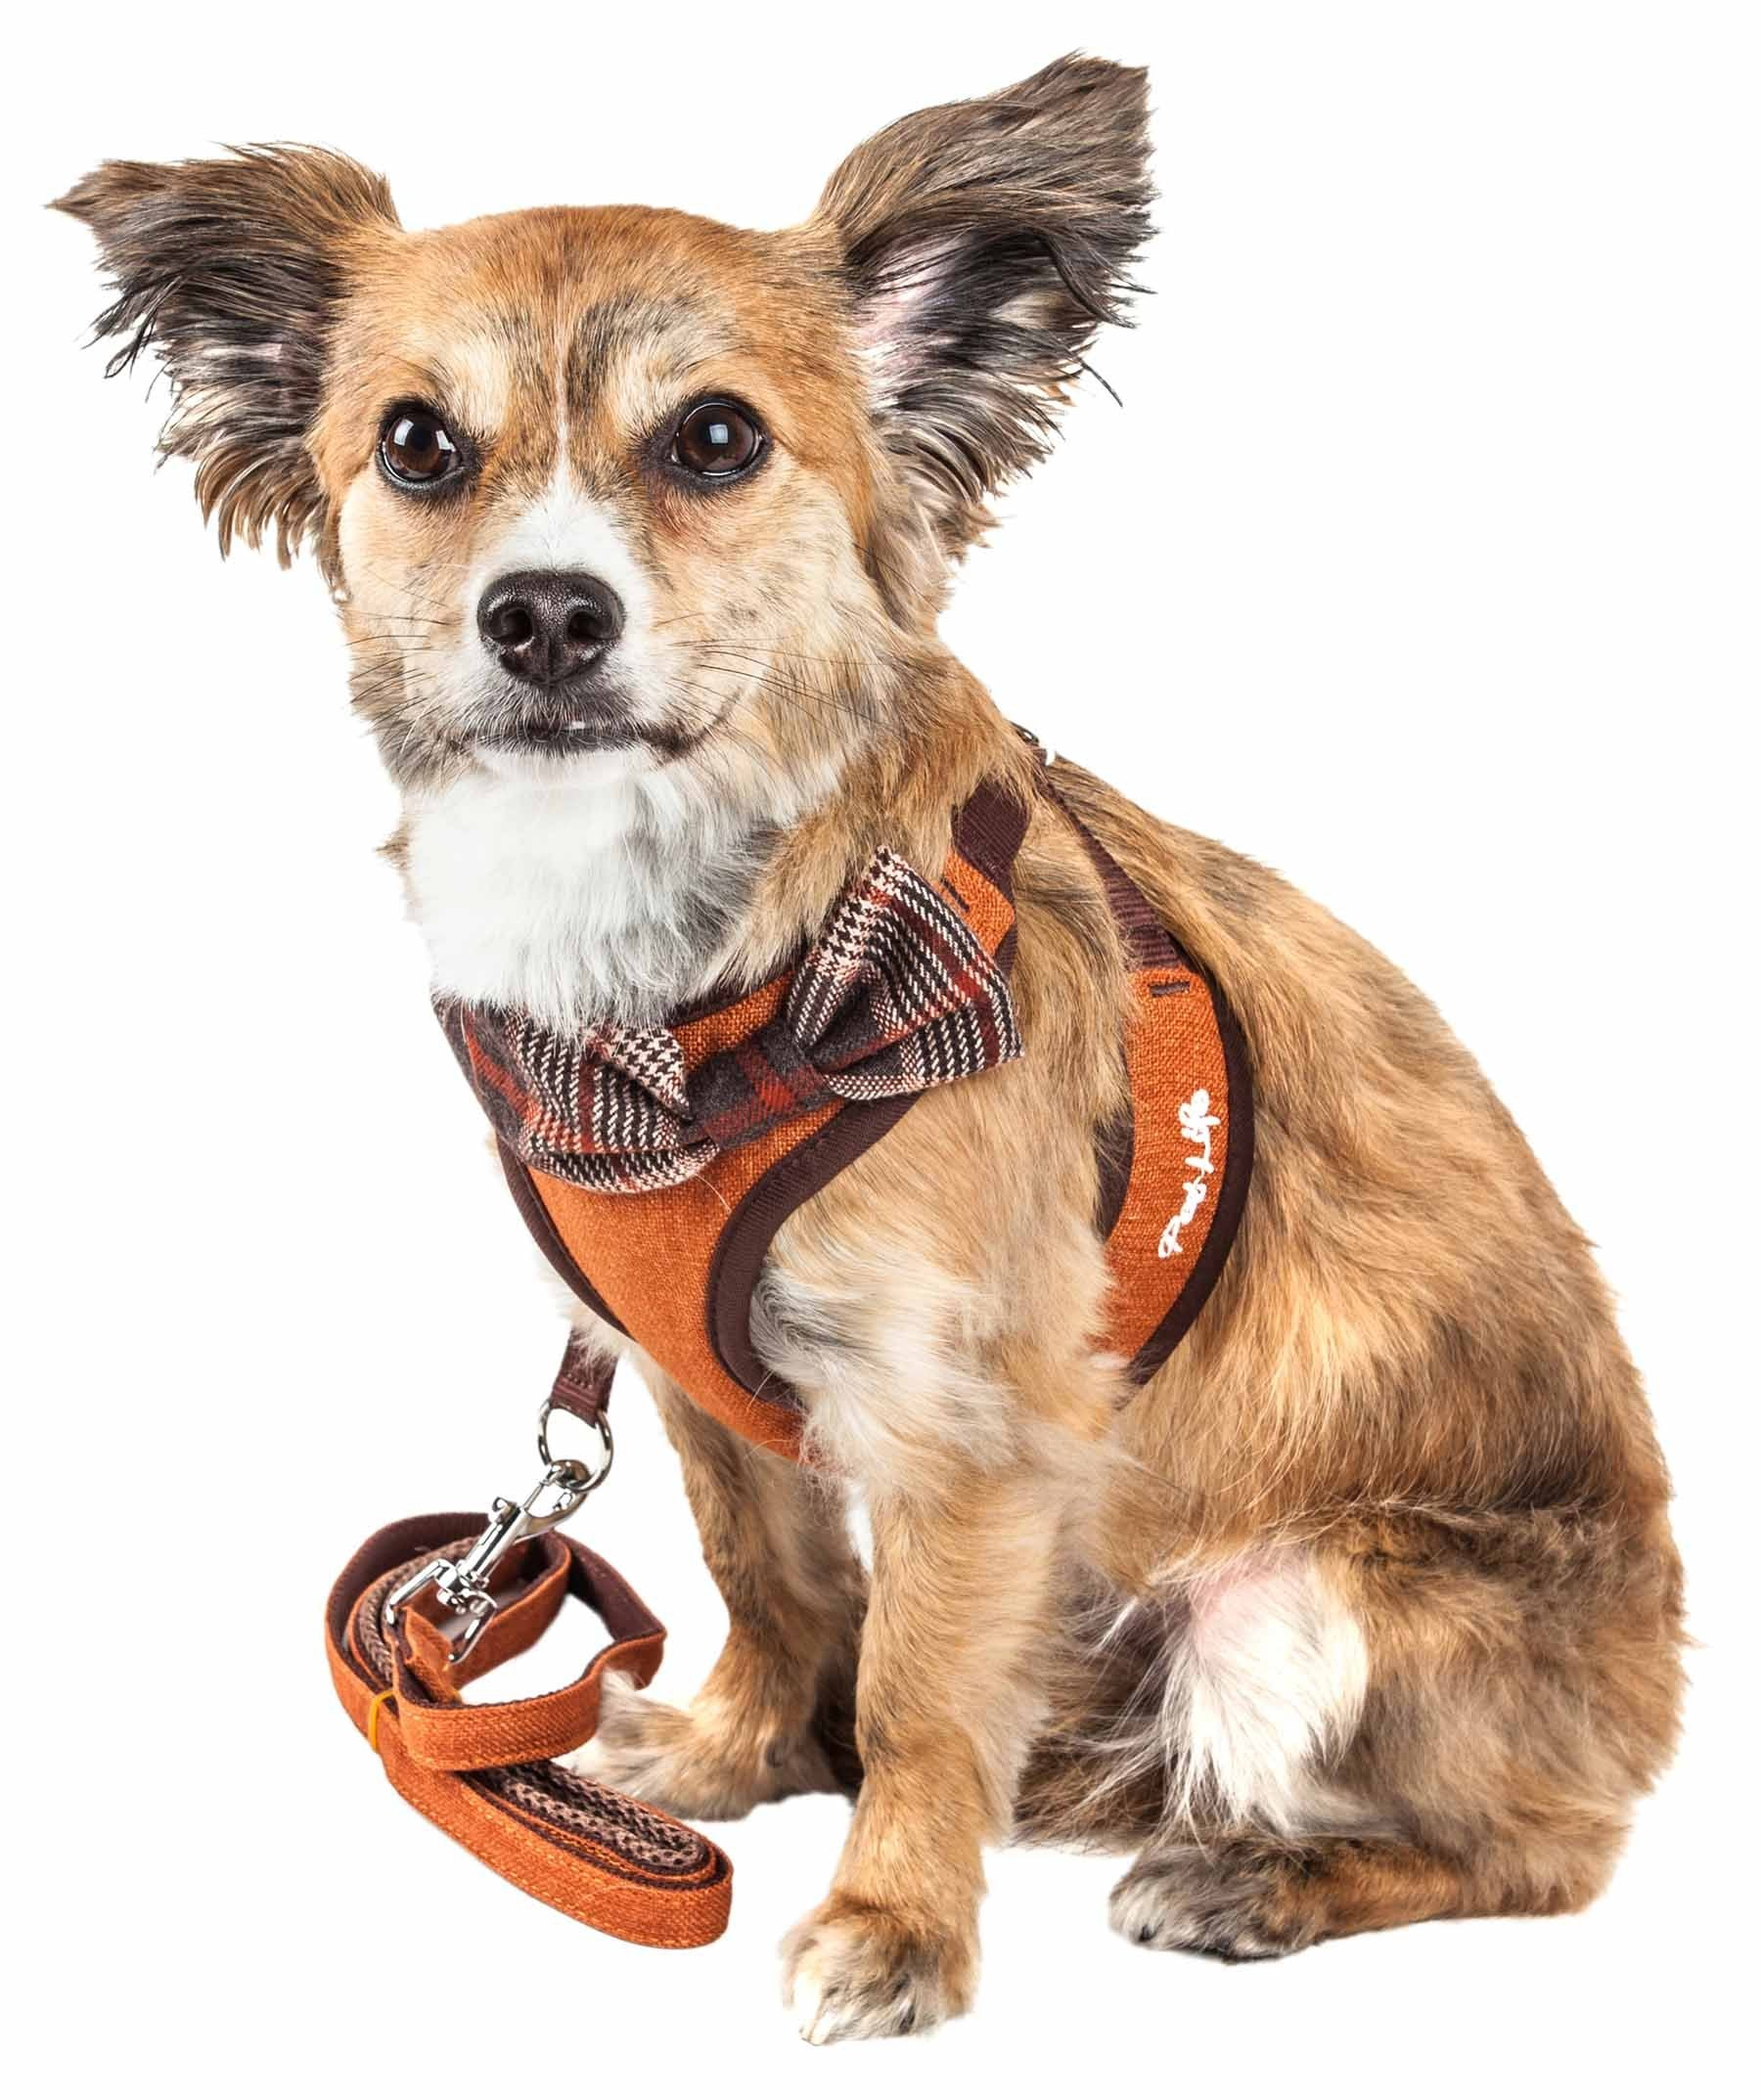 Pet Life ® Luxe 'Pawsh' 2-In-1 Mesh Reversed Adjustable Dog Harness-Leash W/ Fashion Bowtie